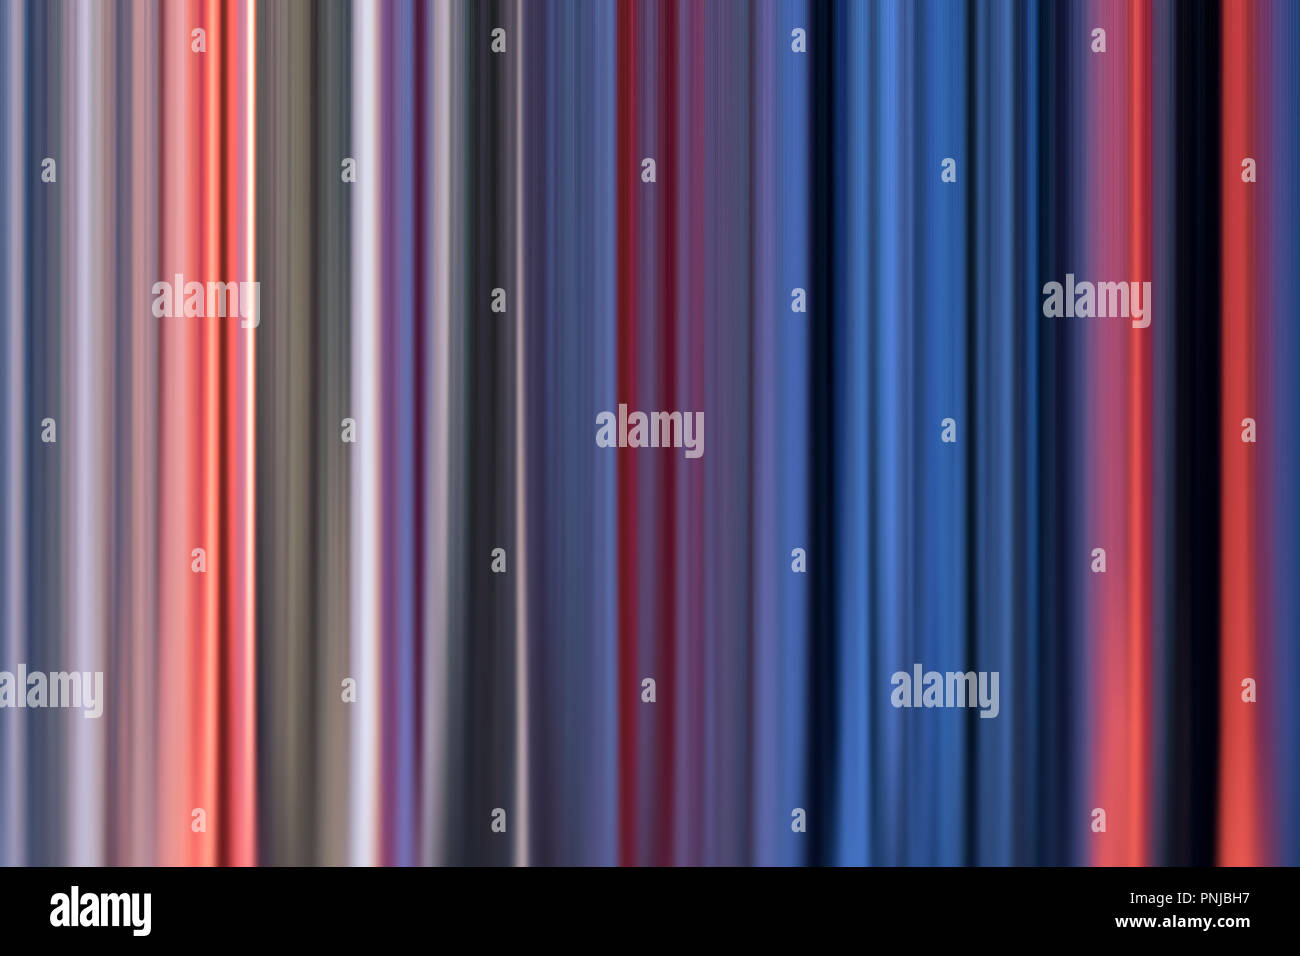 Half blurred multicolored vertical striped abstract background, curtain imitation - Stock Image